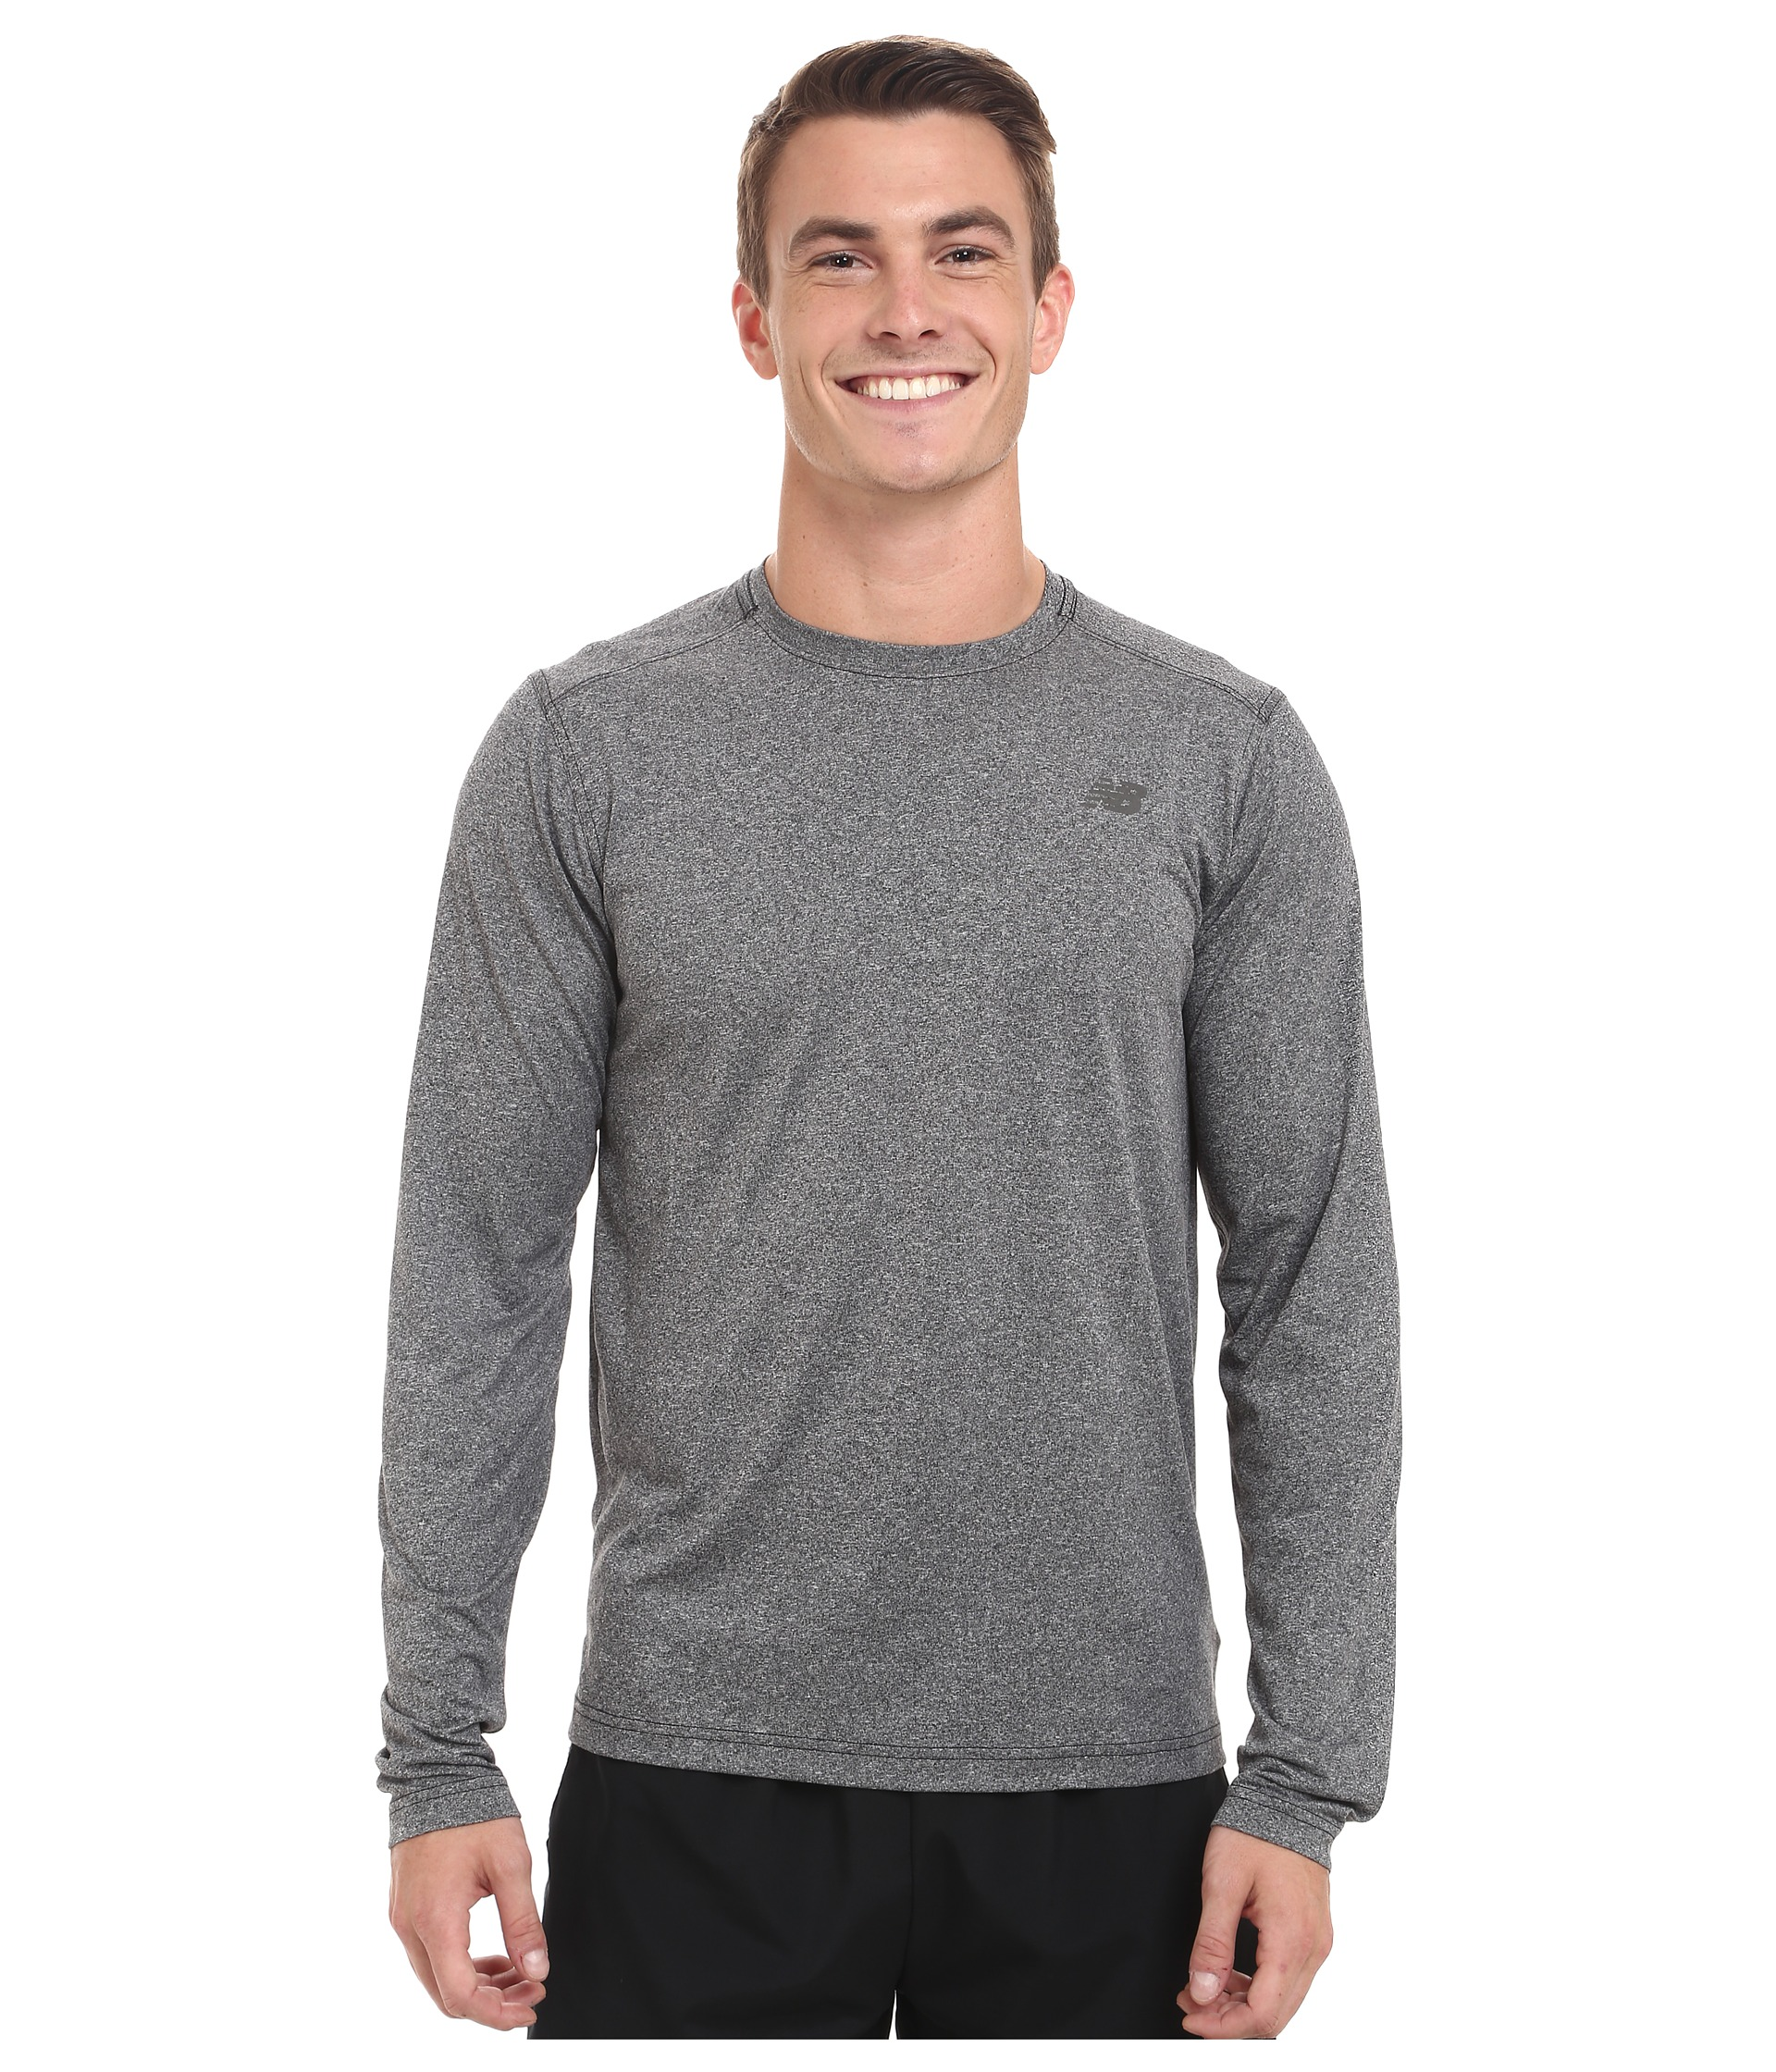 W9w4yp5h Discount New Balance Mens Long Sleeve Running Shirt